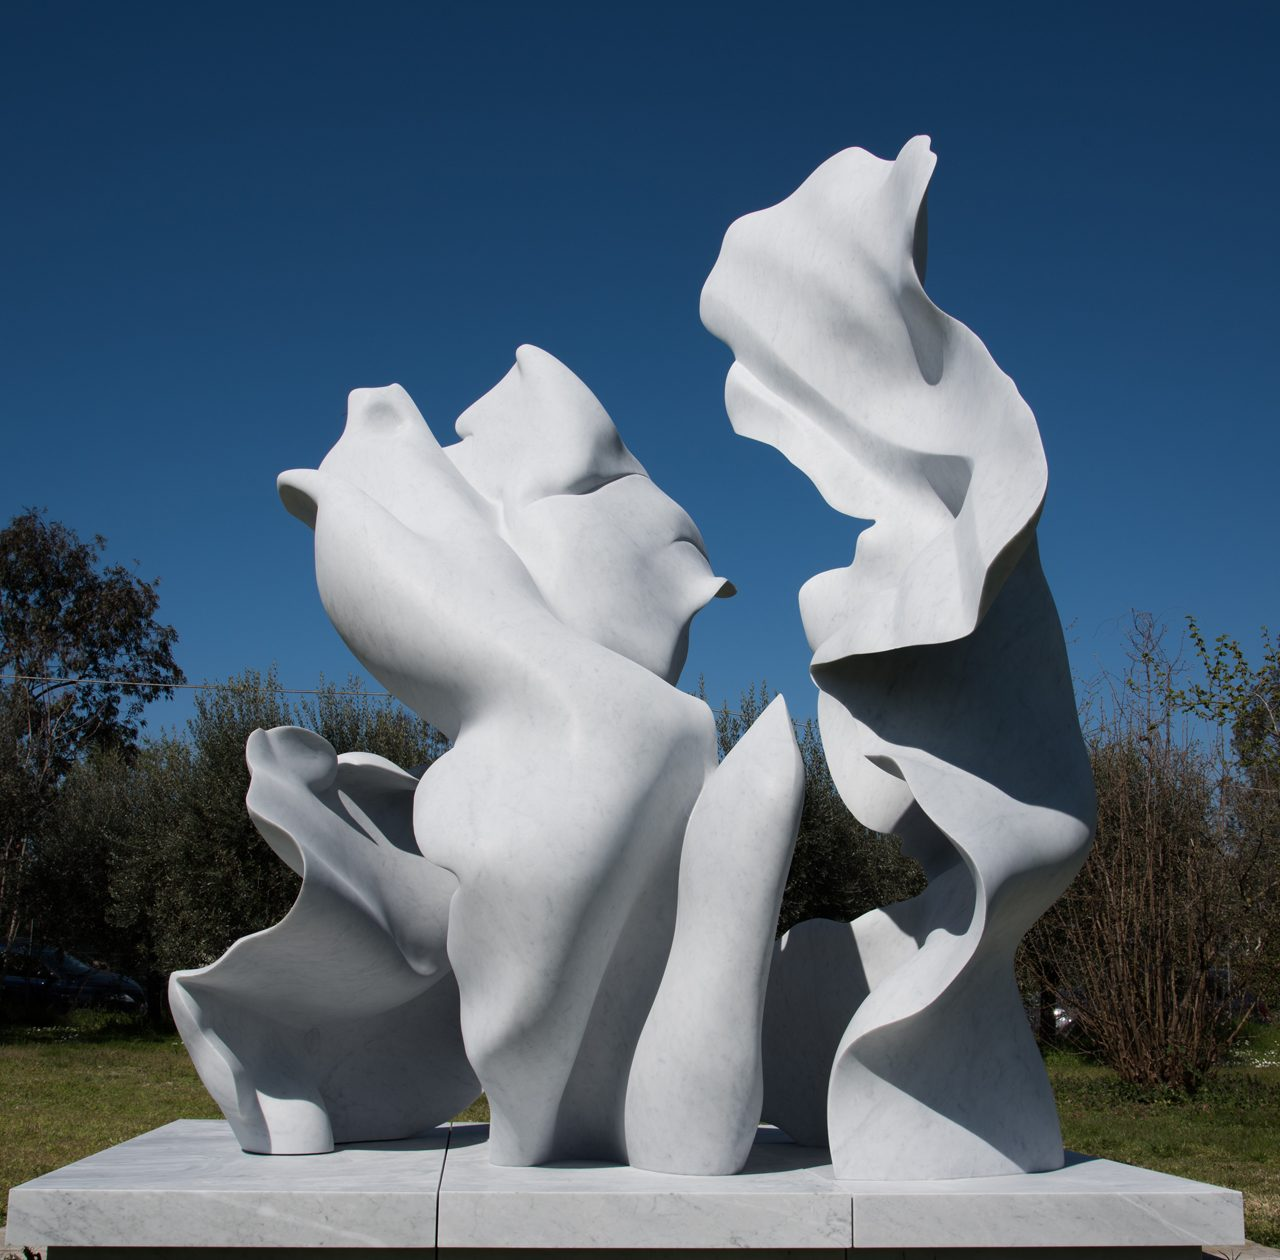 Sculptor Helaine Blumenfeld Presents Largest Solo Exhibition at Canary Wharf